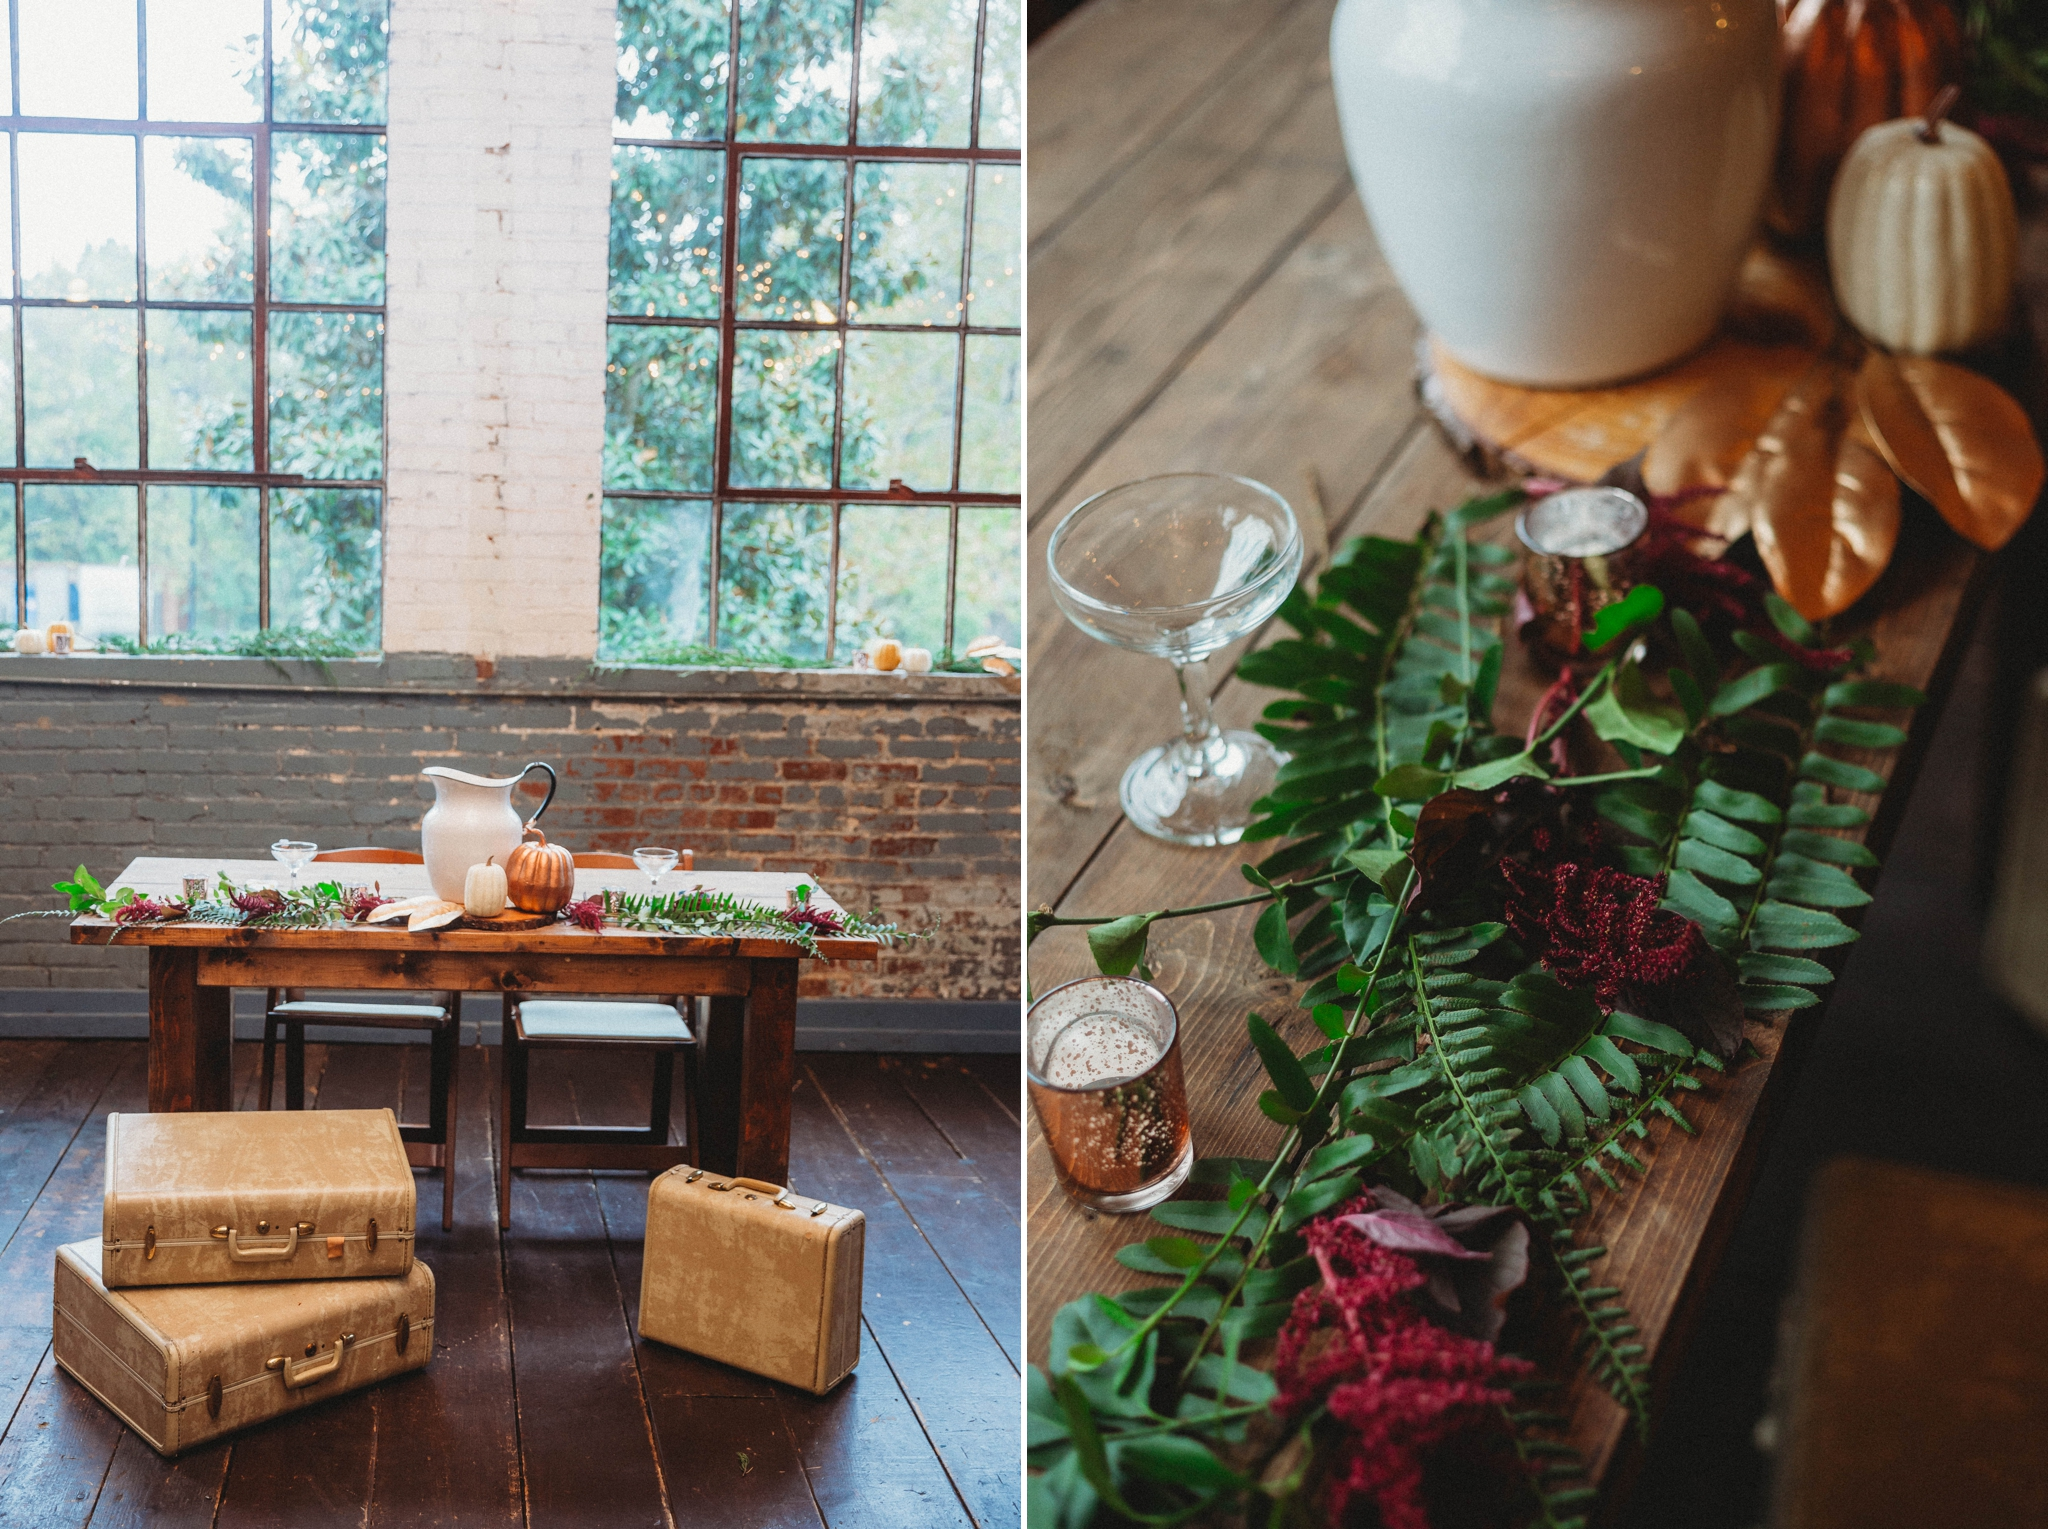 Sweetheart table decorated with vintage vases and suitcases, antiques -  Brittany + Douglas - Forest Hall at Chatham Mills in Pittsboro, NC - Raleigh North Carolina Wedding Photographer